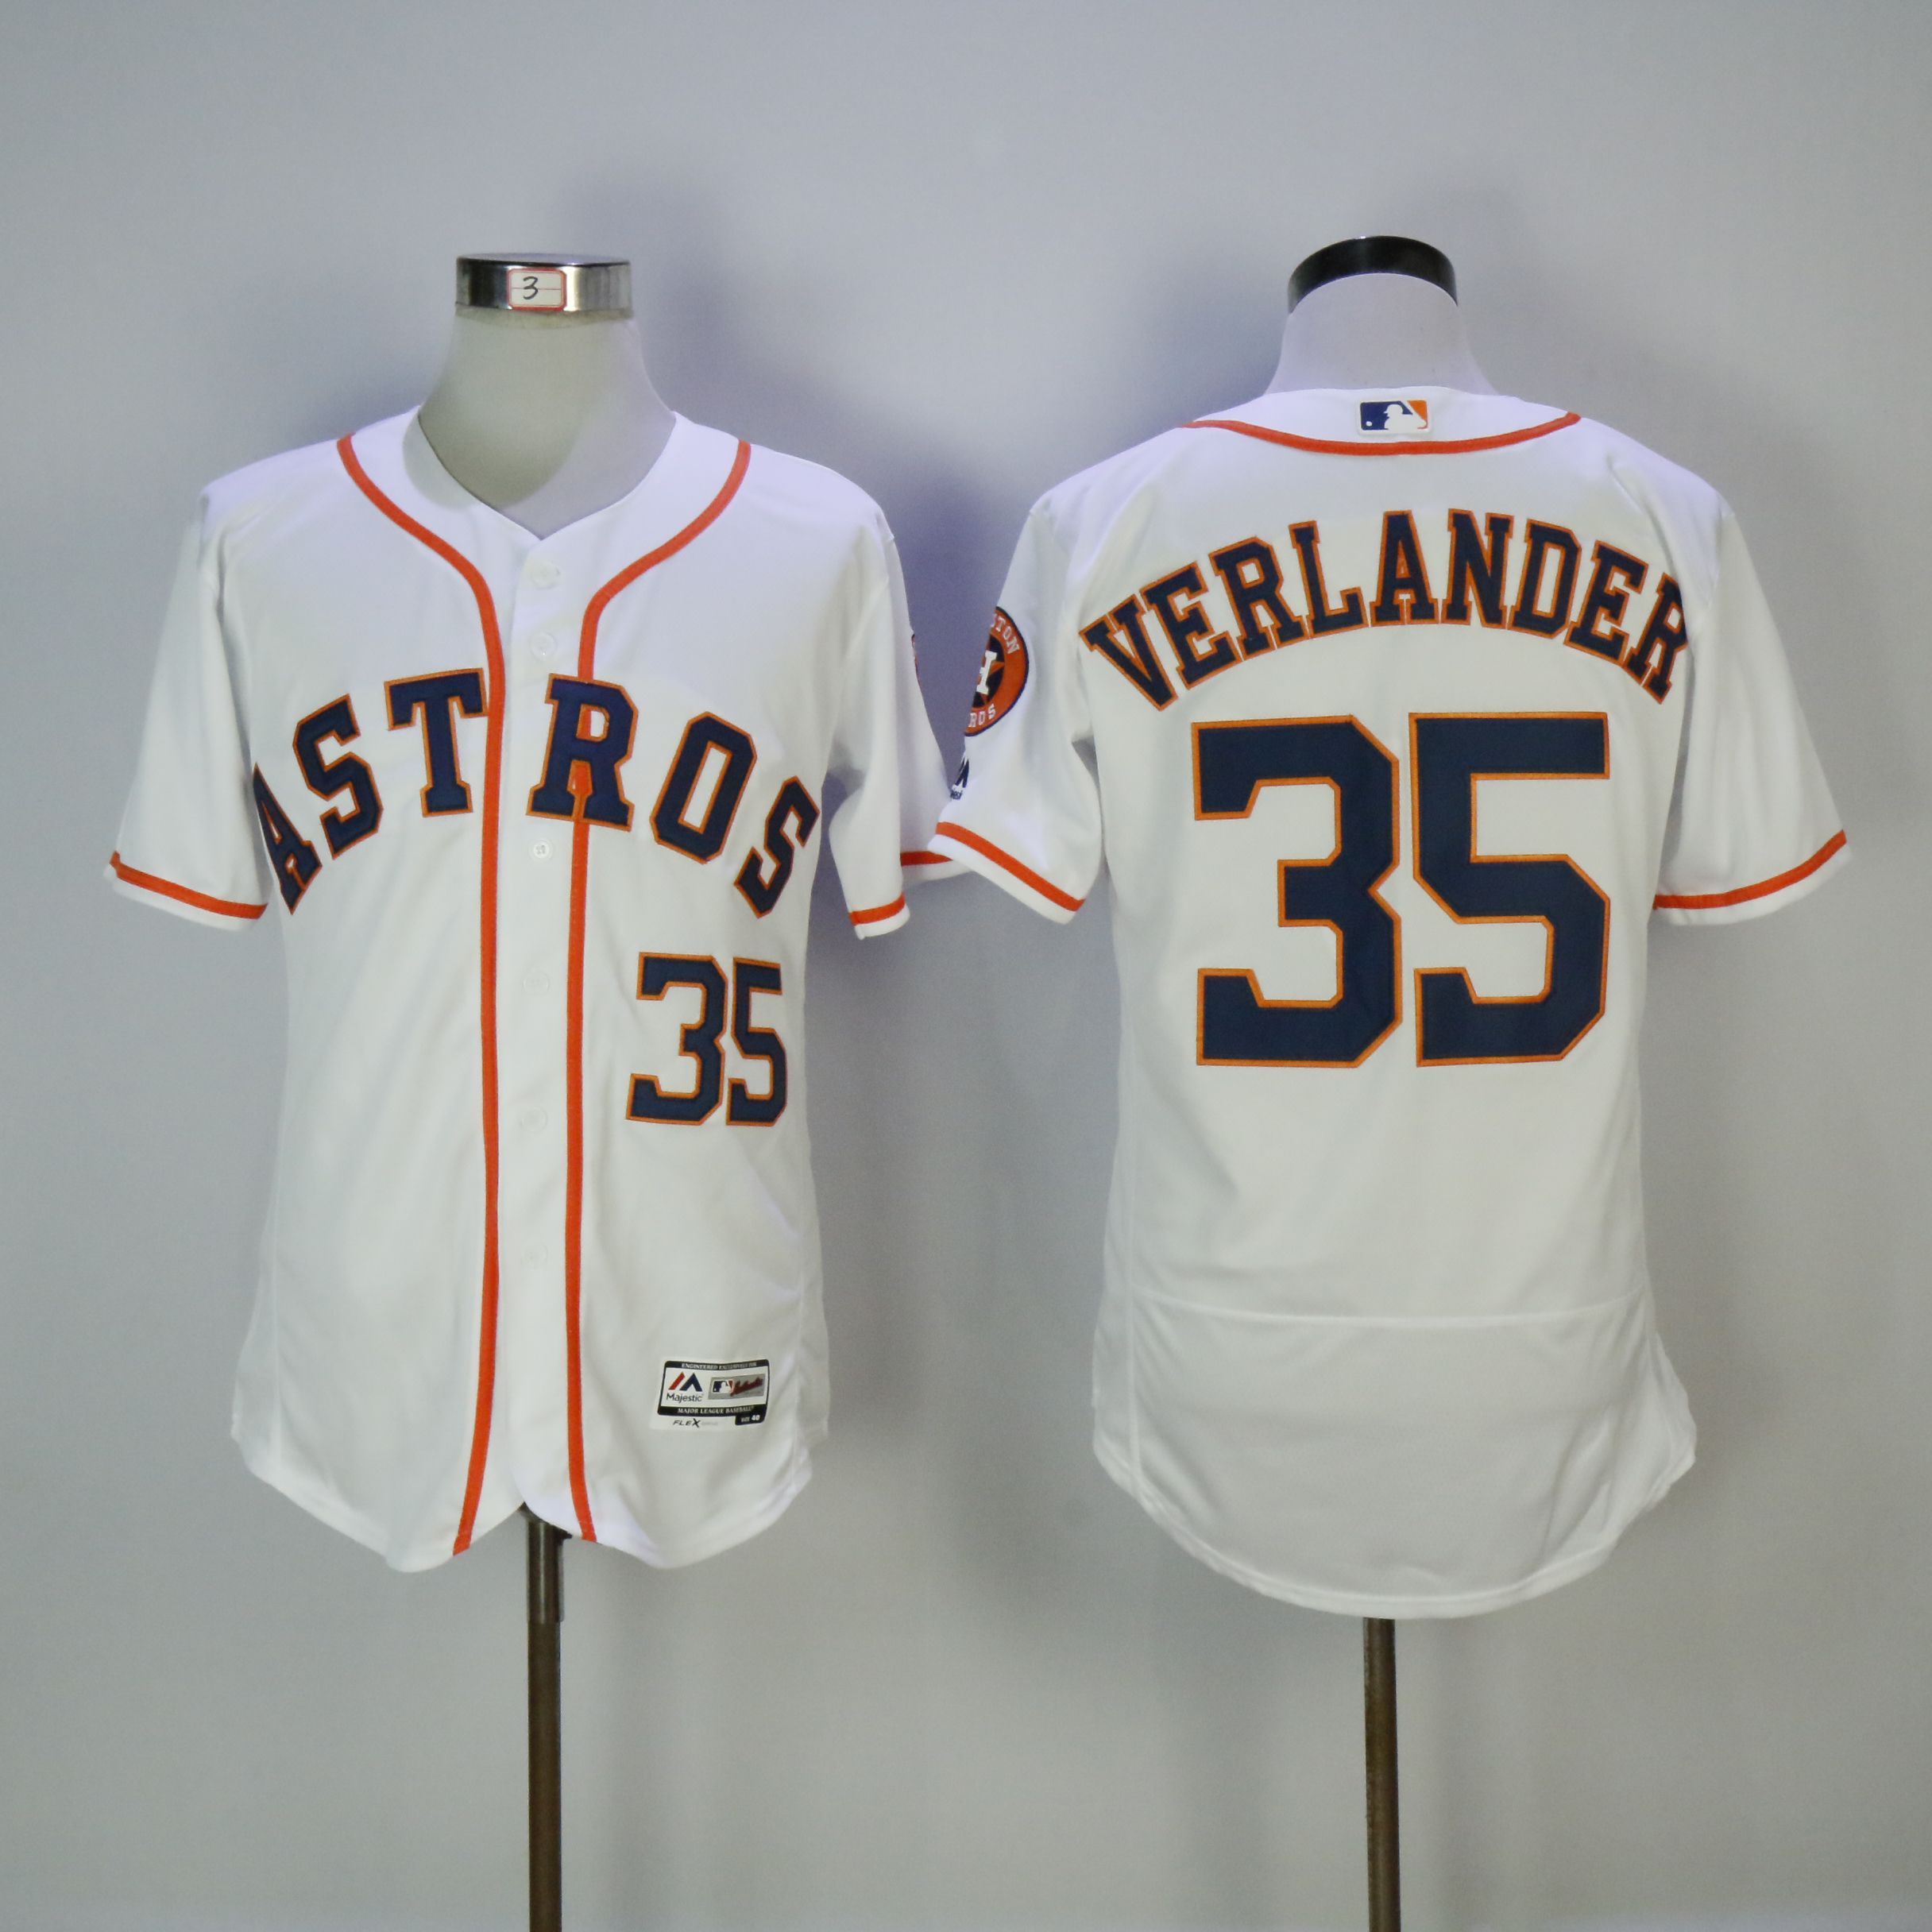 Men Houston Astros 35 Verlander White MLB Jerseys